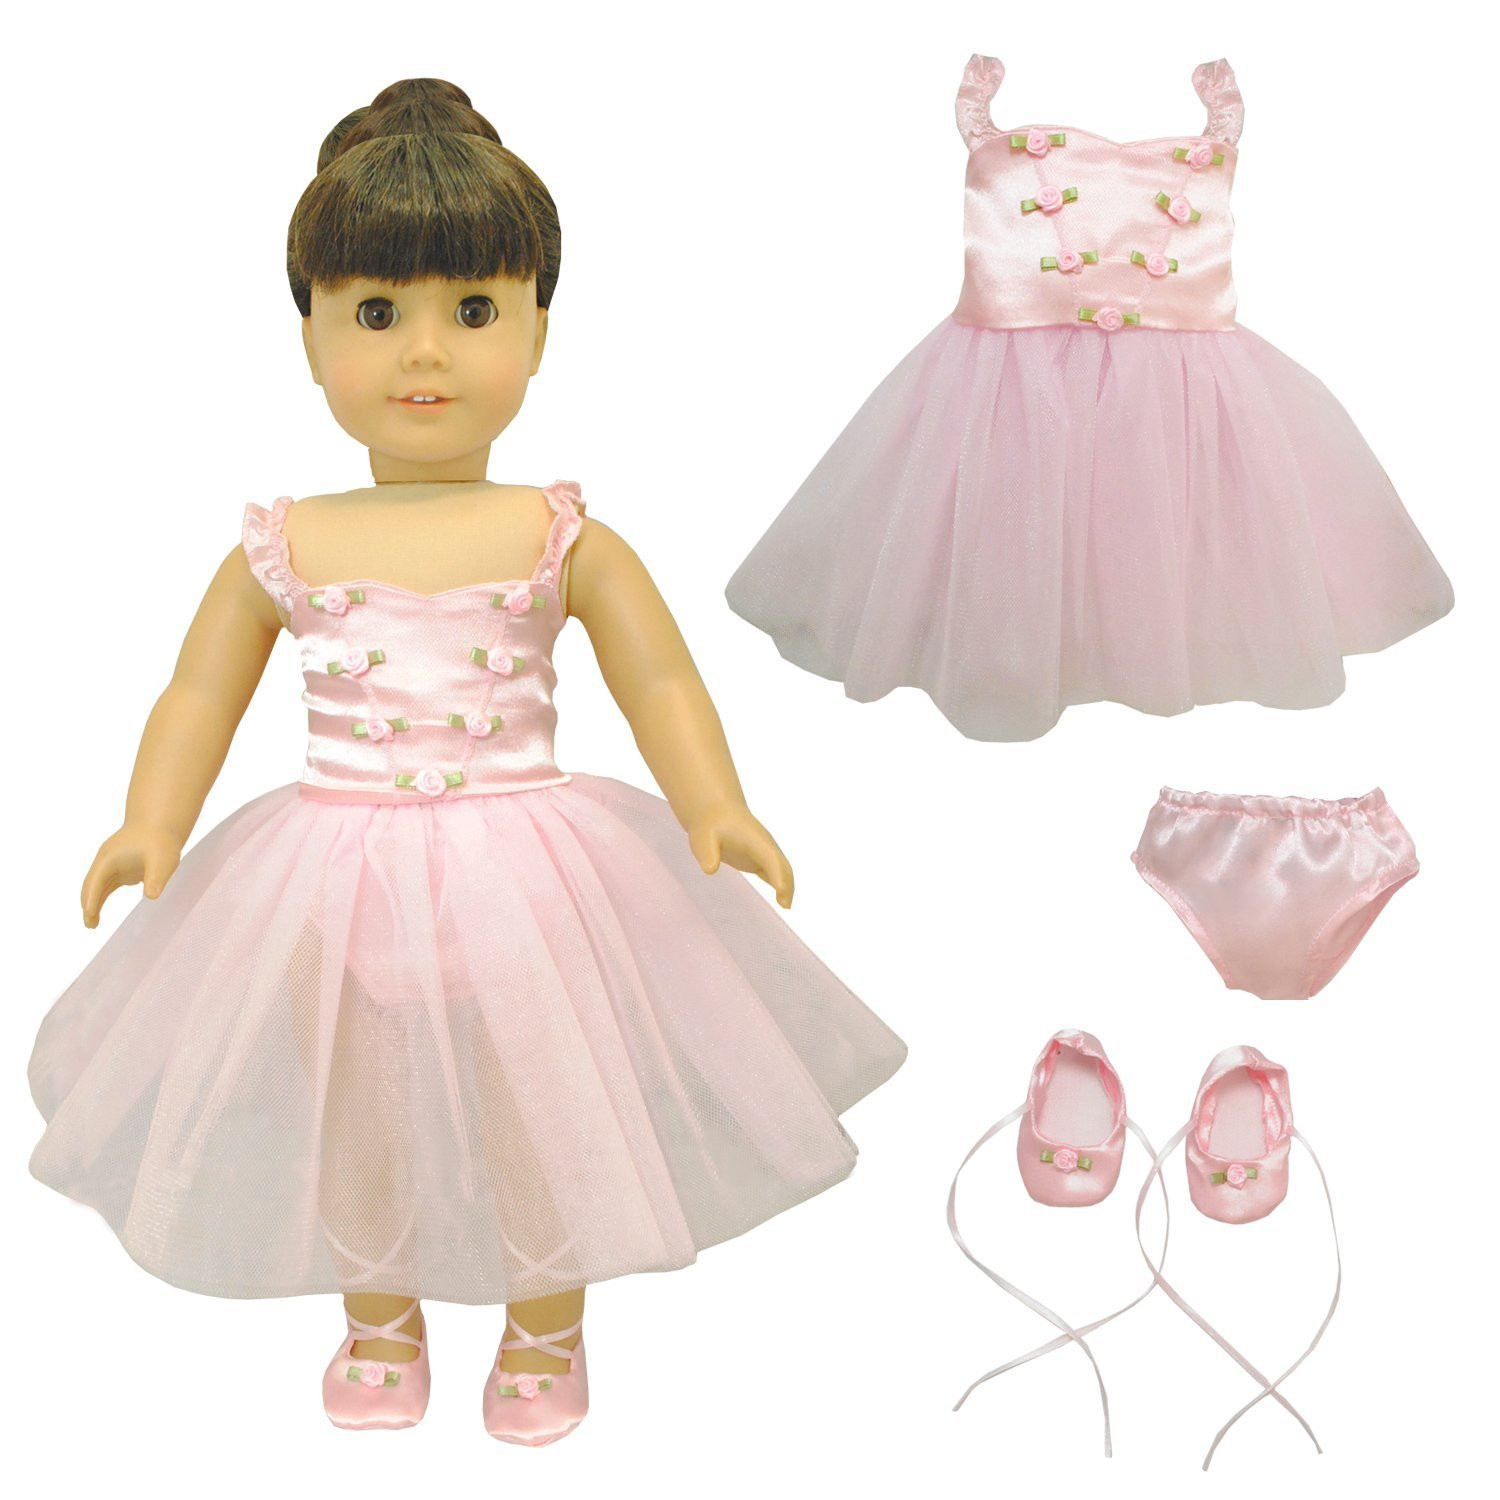 Ballet Ballerina Dress Outfit Doll Clothes Accessories Fits American Girl My Generation &... by